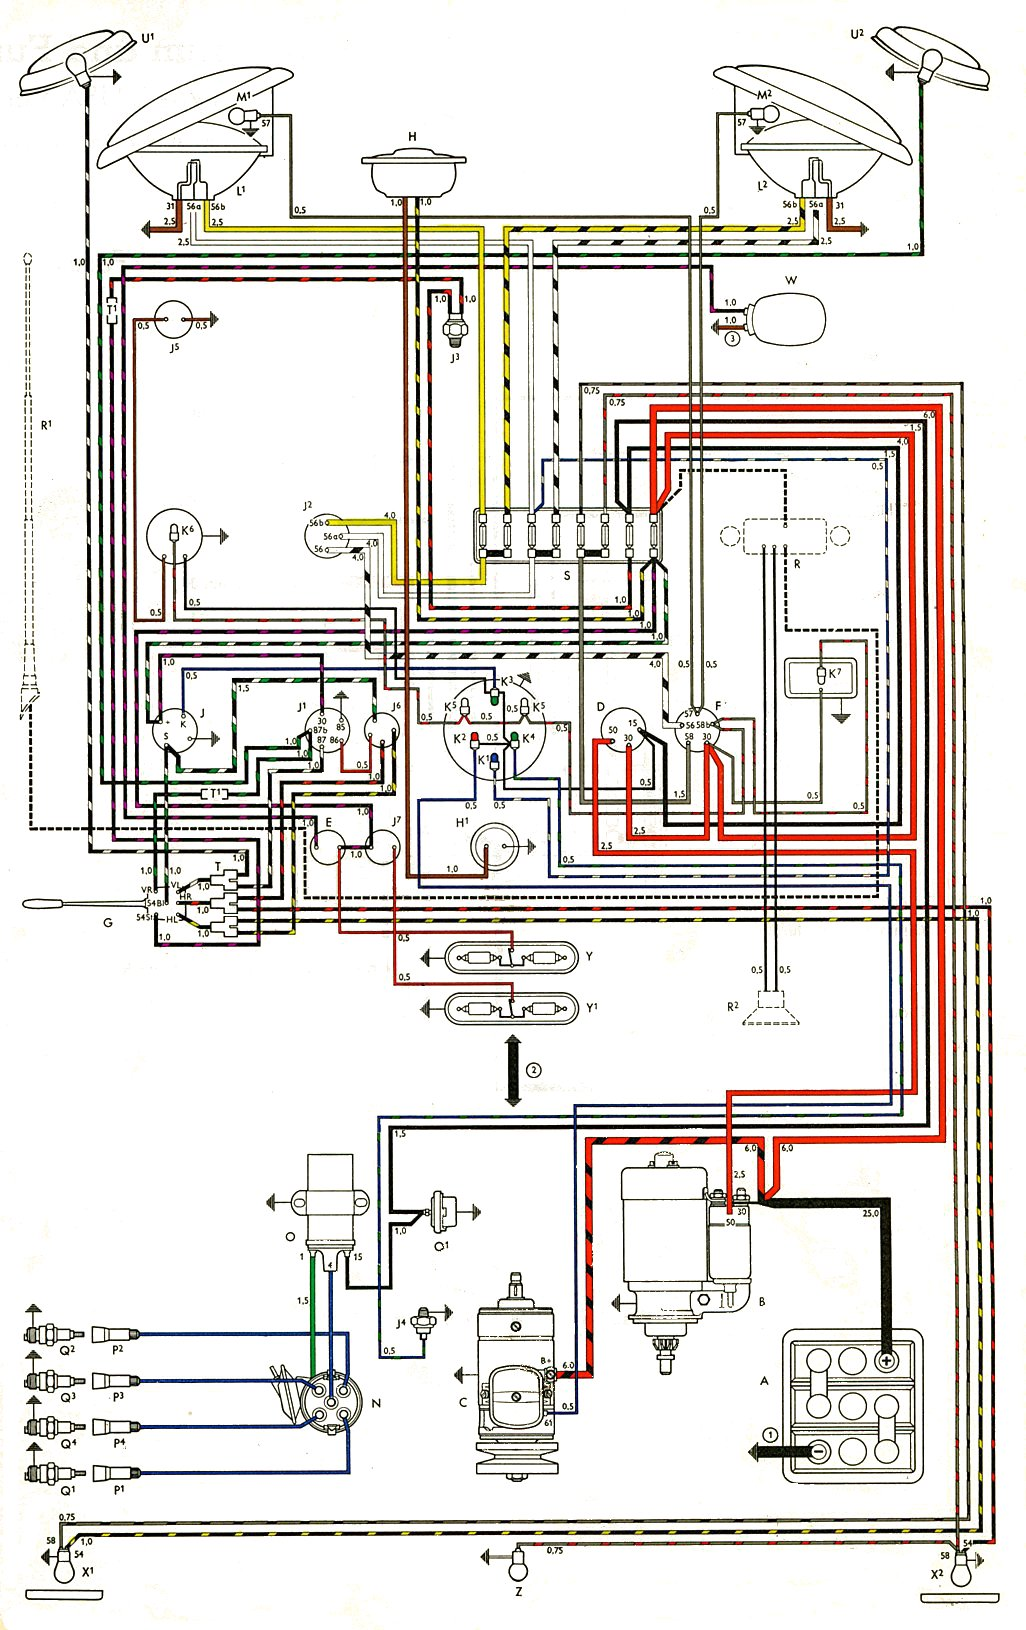 thesamba com type 2 wiring diagrams rh thesamba com thomas c2 school bus wiring diagrams thomas c2 school bus wiring diagrams